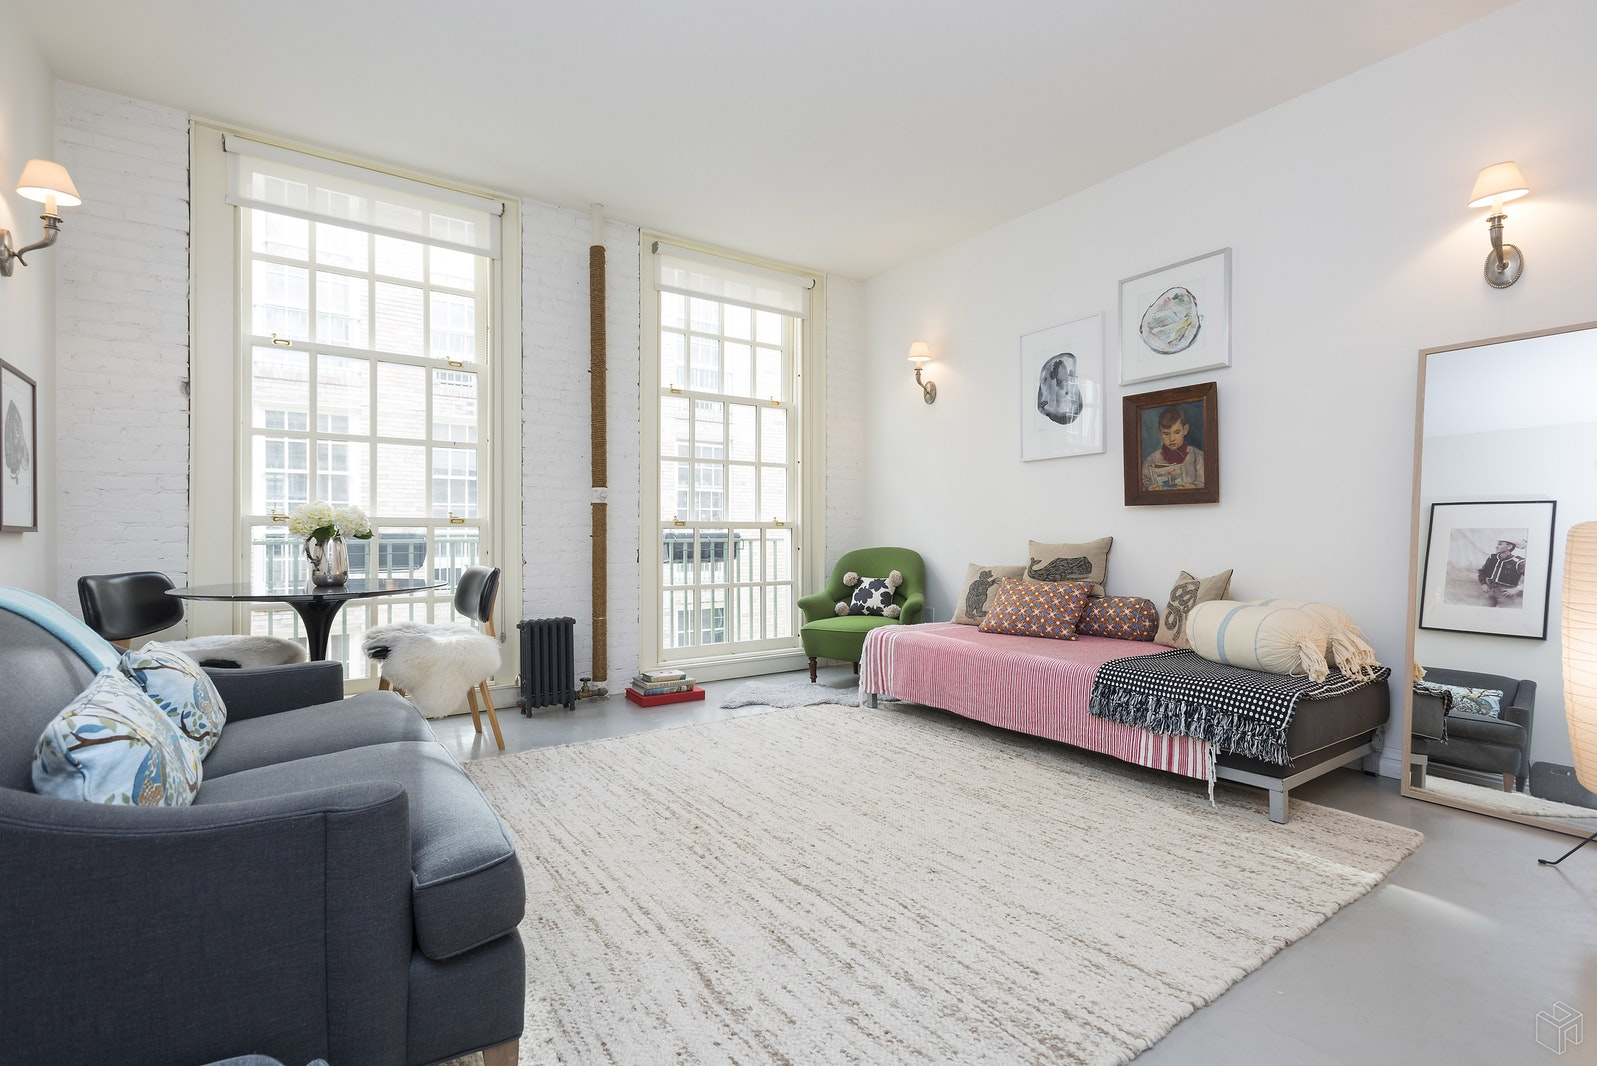 517 East 77th Street 4h, Upper East Side, NYC, 10075, Price Not Disclosed, Rented Property, Halstead Real Estate, Photo 1